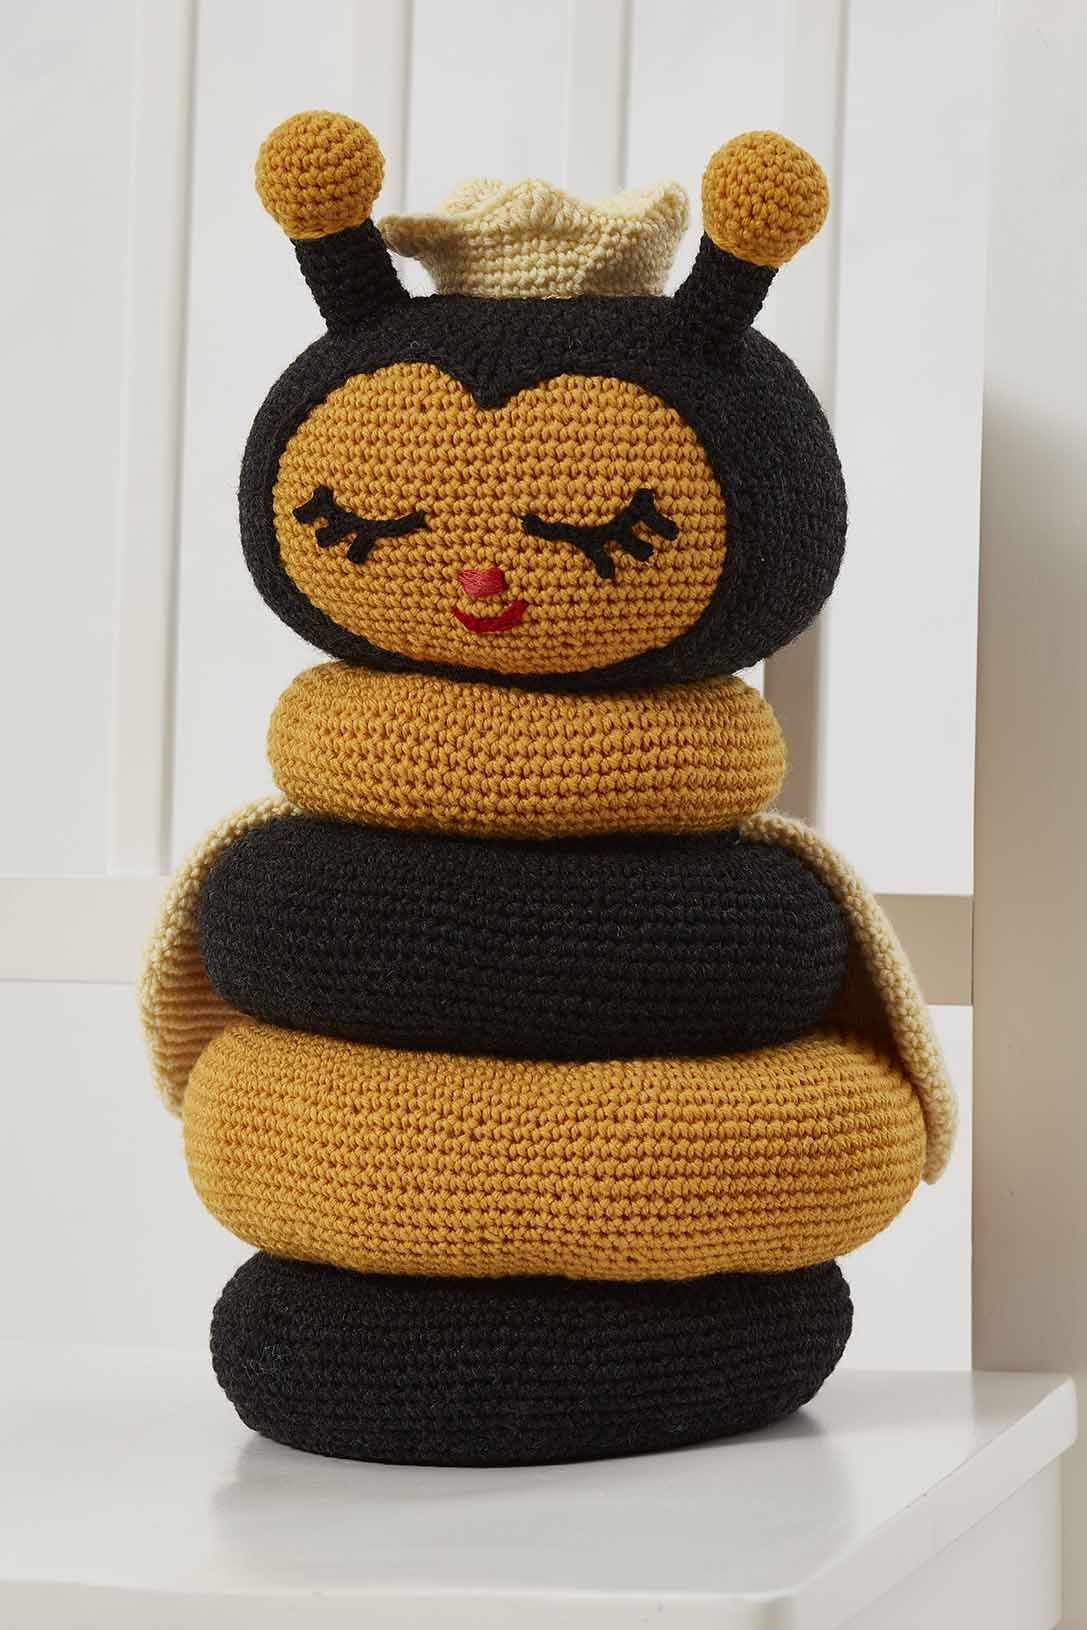 Bee Baby Gift DIGITAL DOWNLOAD Toy Pattern Stacking Toy Knitting Pattern Baby Shower Gift Knitted Bee Stackable Ring Toy Knit Toy